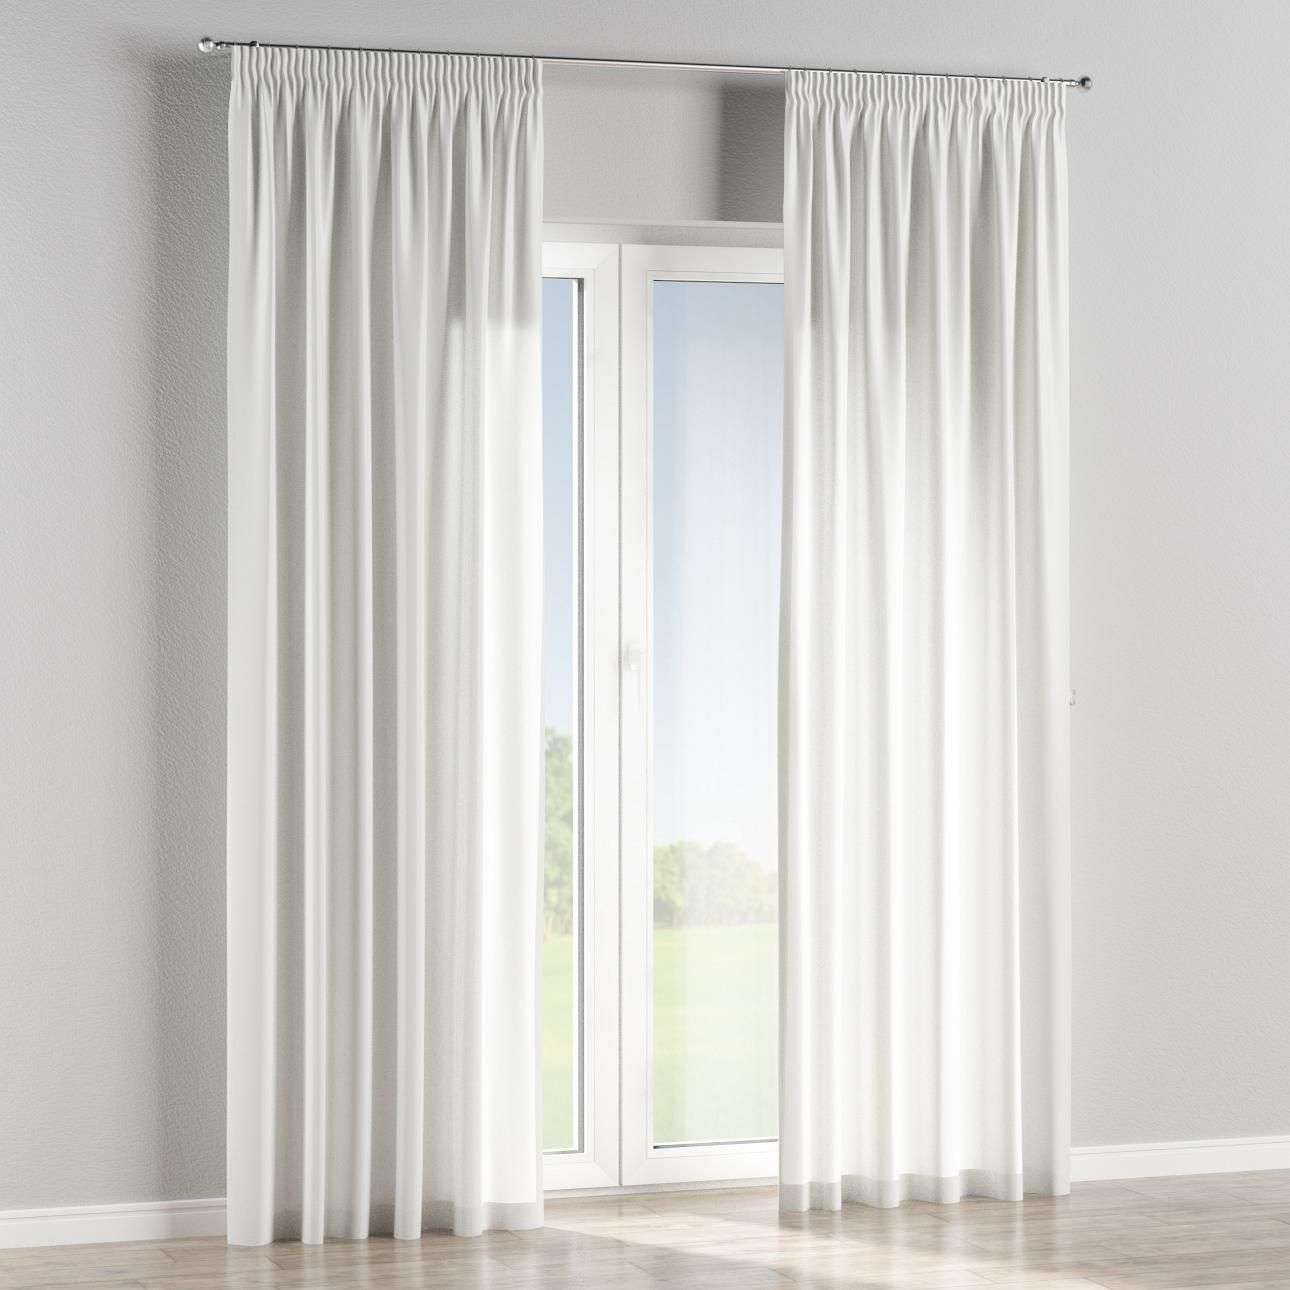 Pencil pleat curtains in collection Venice, fabric: 140-52